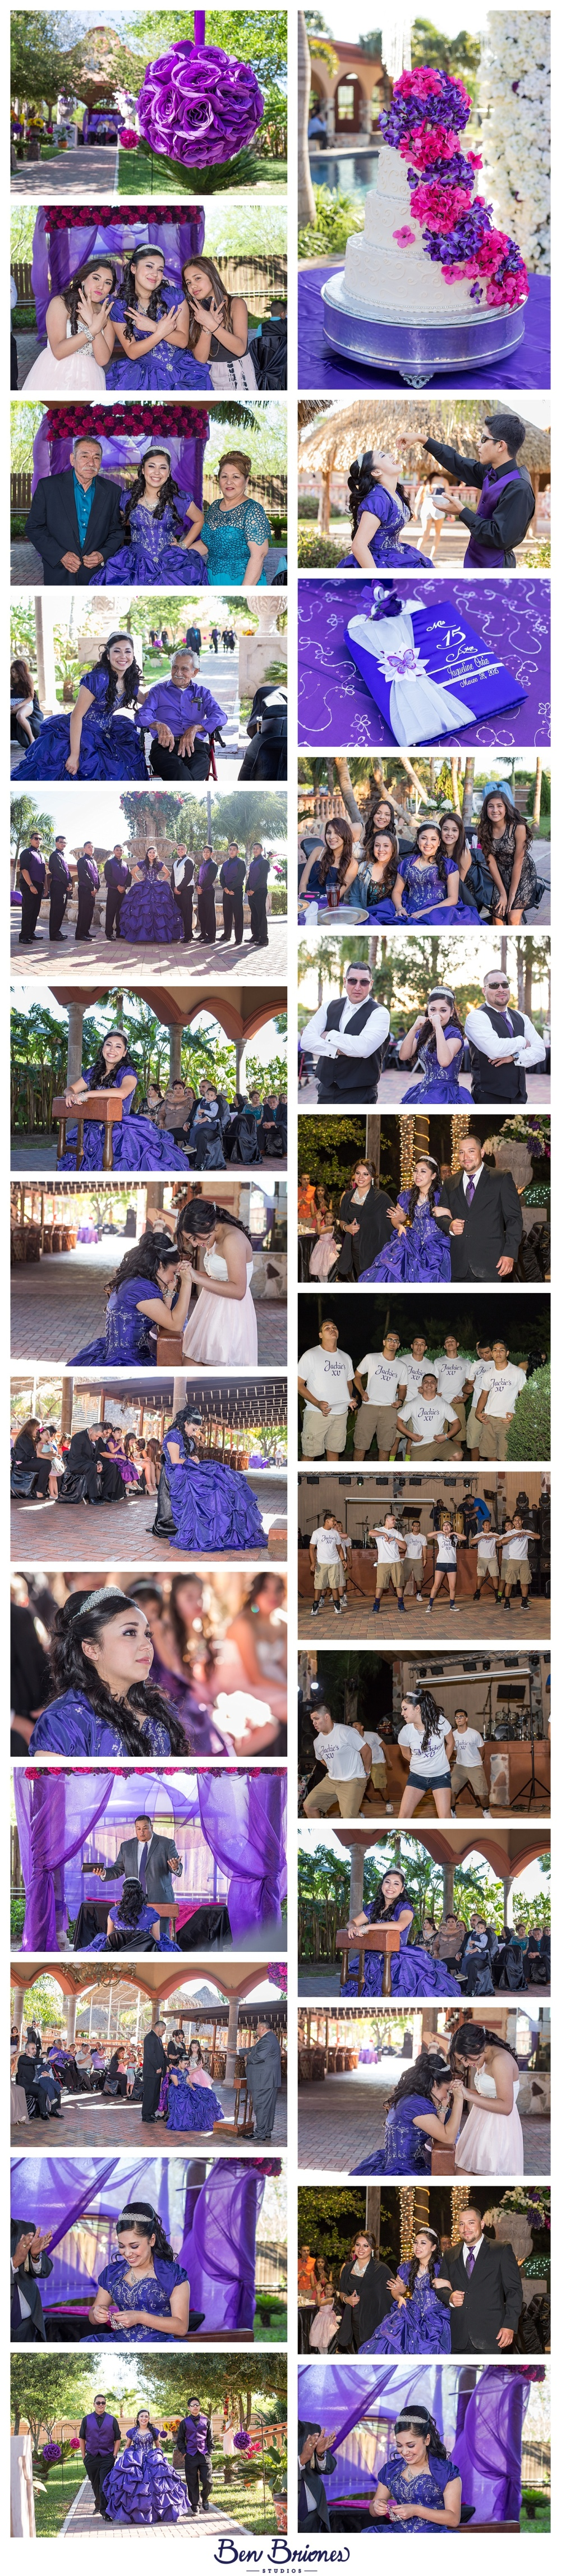 2015March_OrtizQuince_HighRes_BenBrionesStudios-4614_BLOG